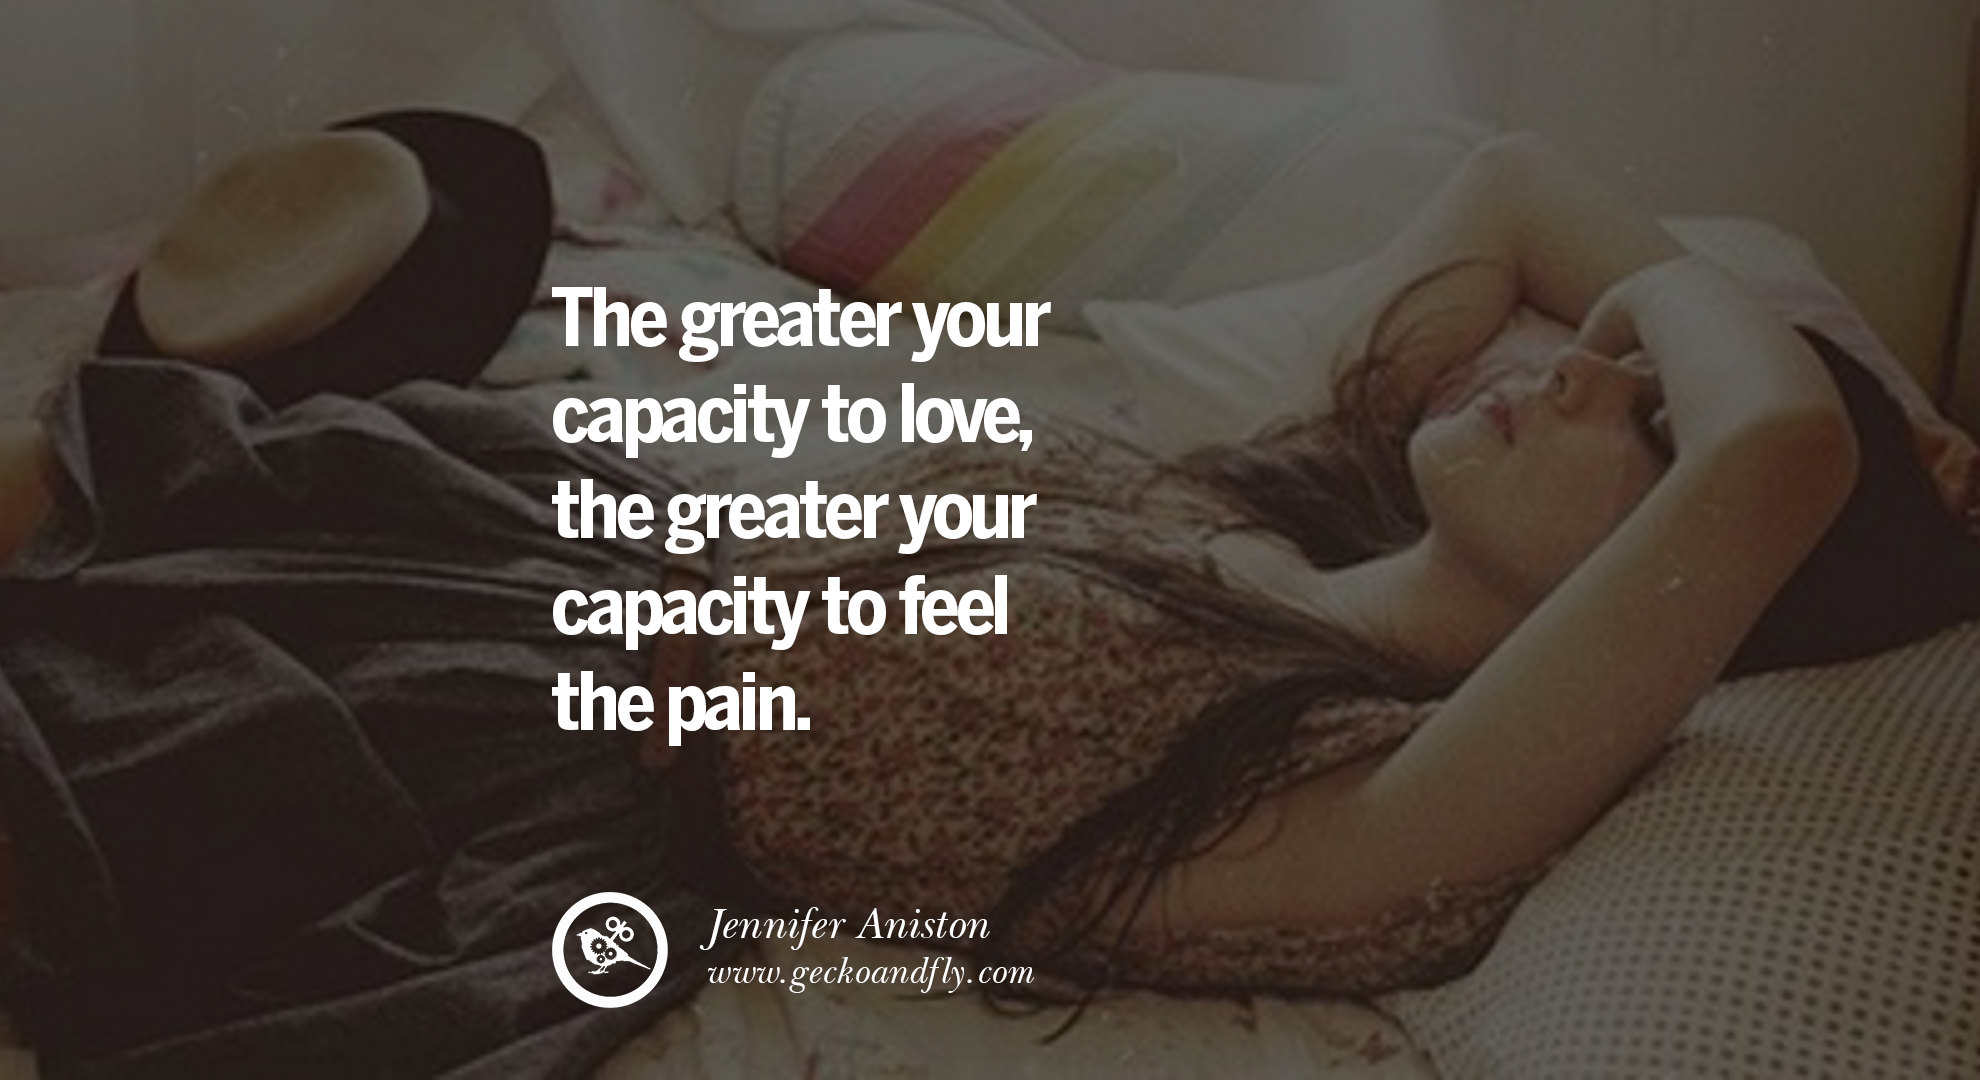 quotes about love The greater your capacity to love, the greater your ...